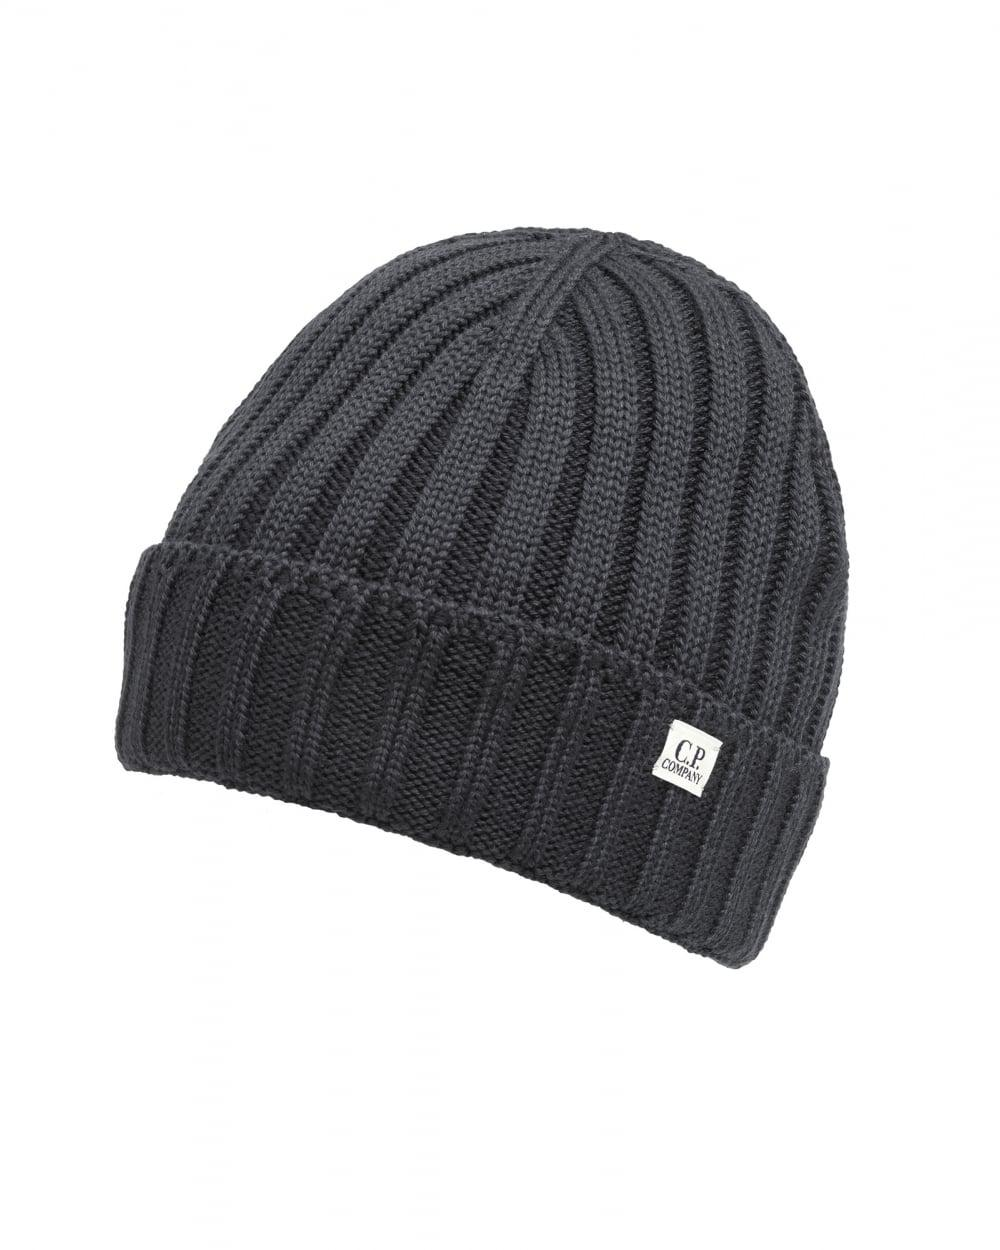 314fe395385 C P Company Black Ribbed Logo Tab Beanie Hat in Black for Men - Lyst